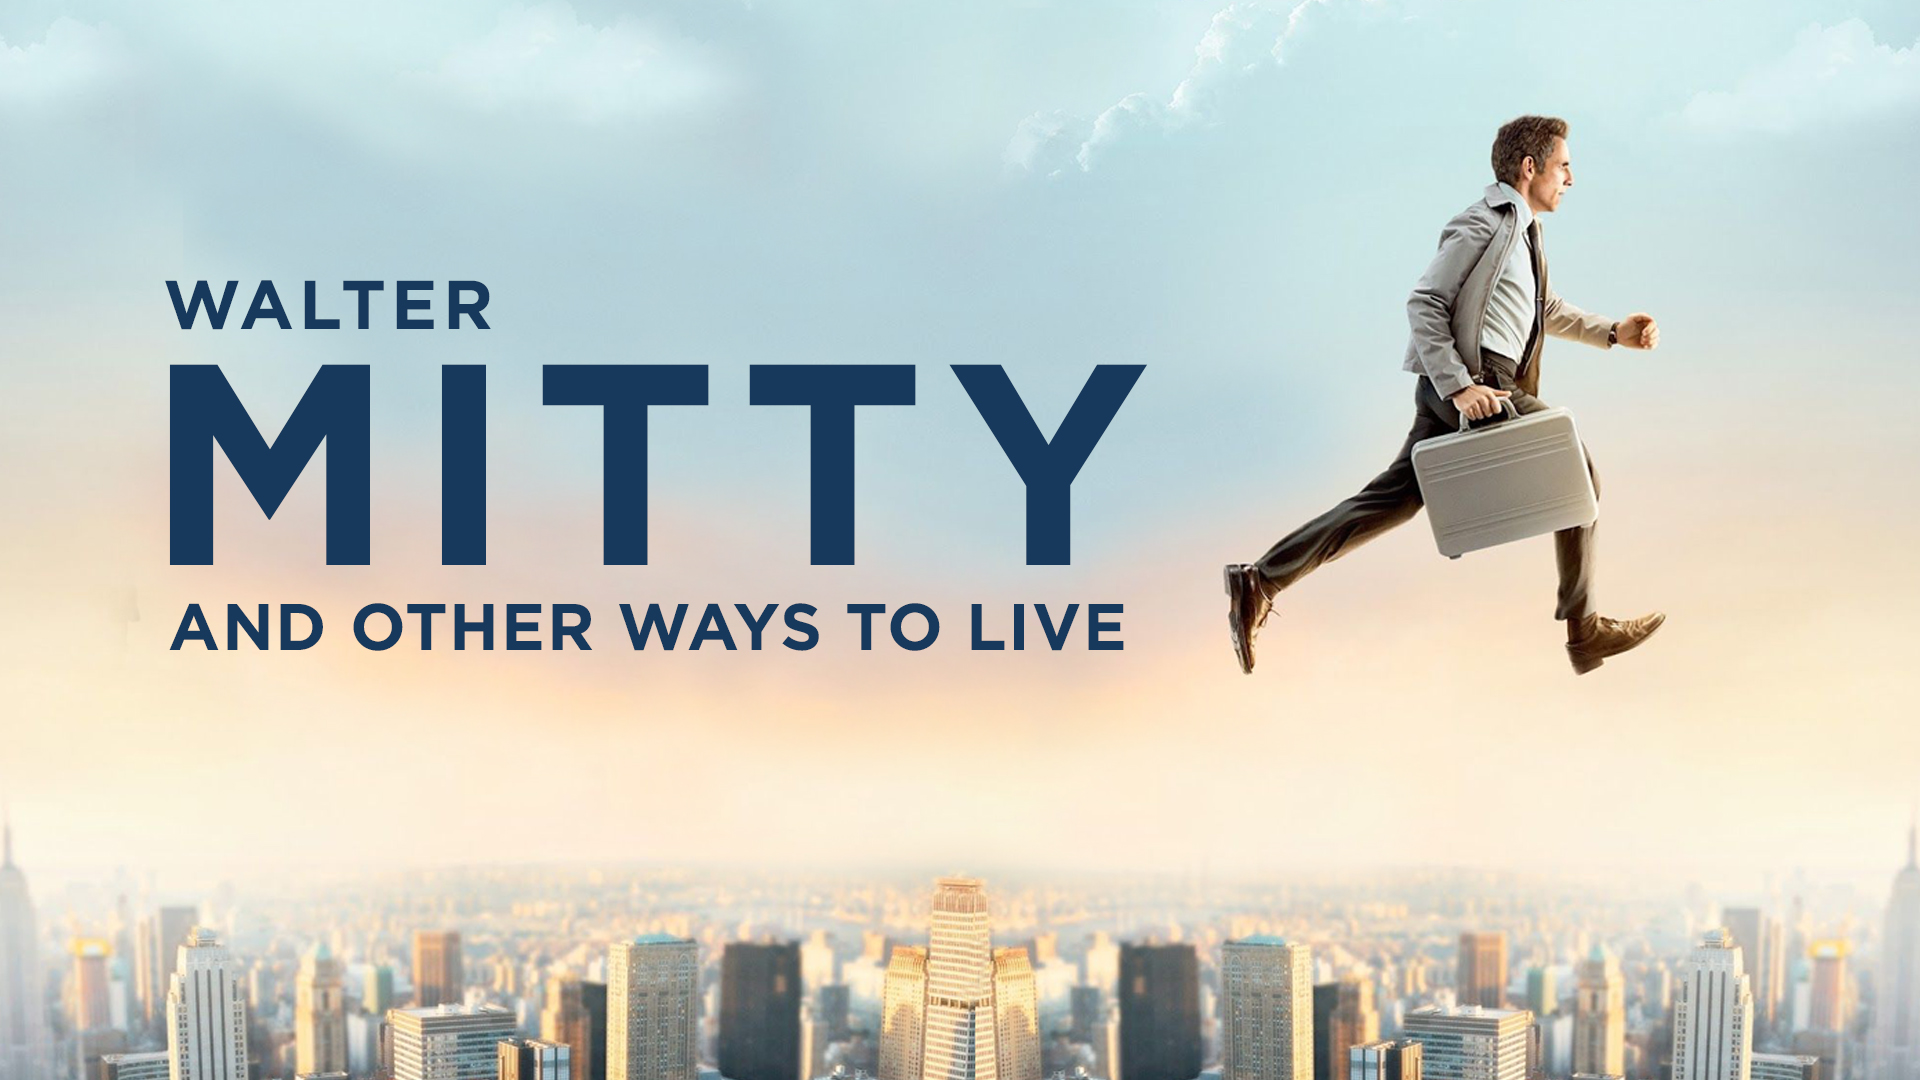 Walter Mitty and Other Ways to Live